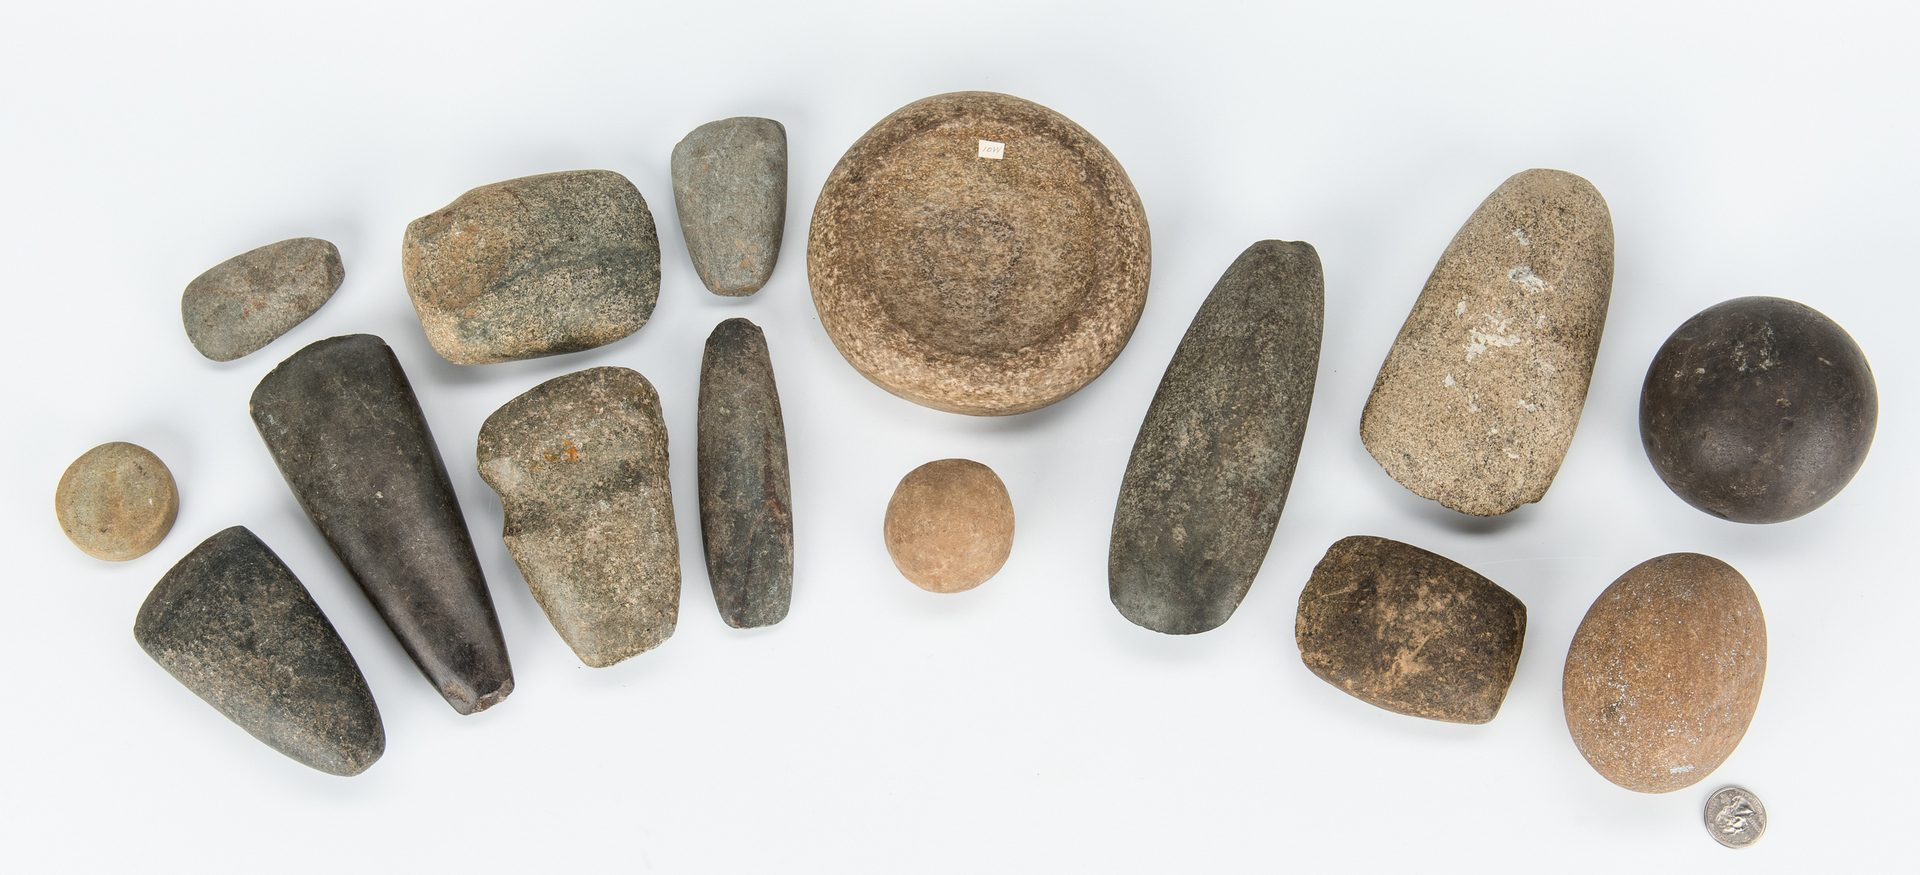 Lot 282: 15 Native American Stone Artifacts, incl. Discoidals